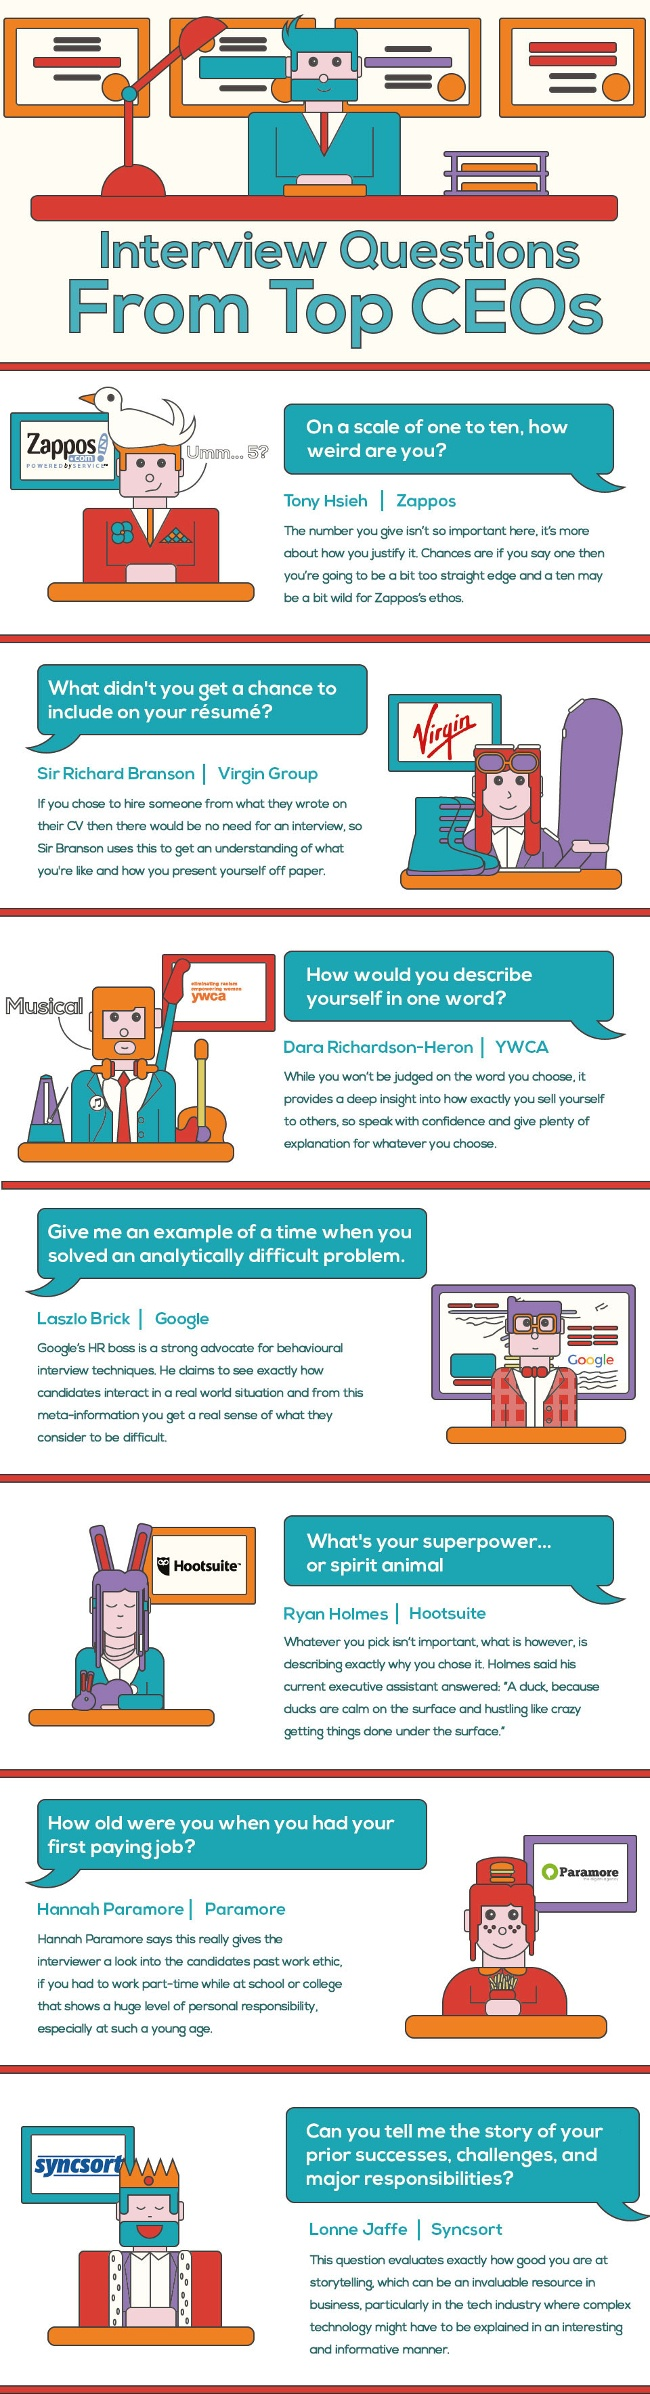 Job interview questions infographic